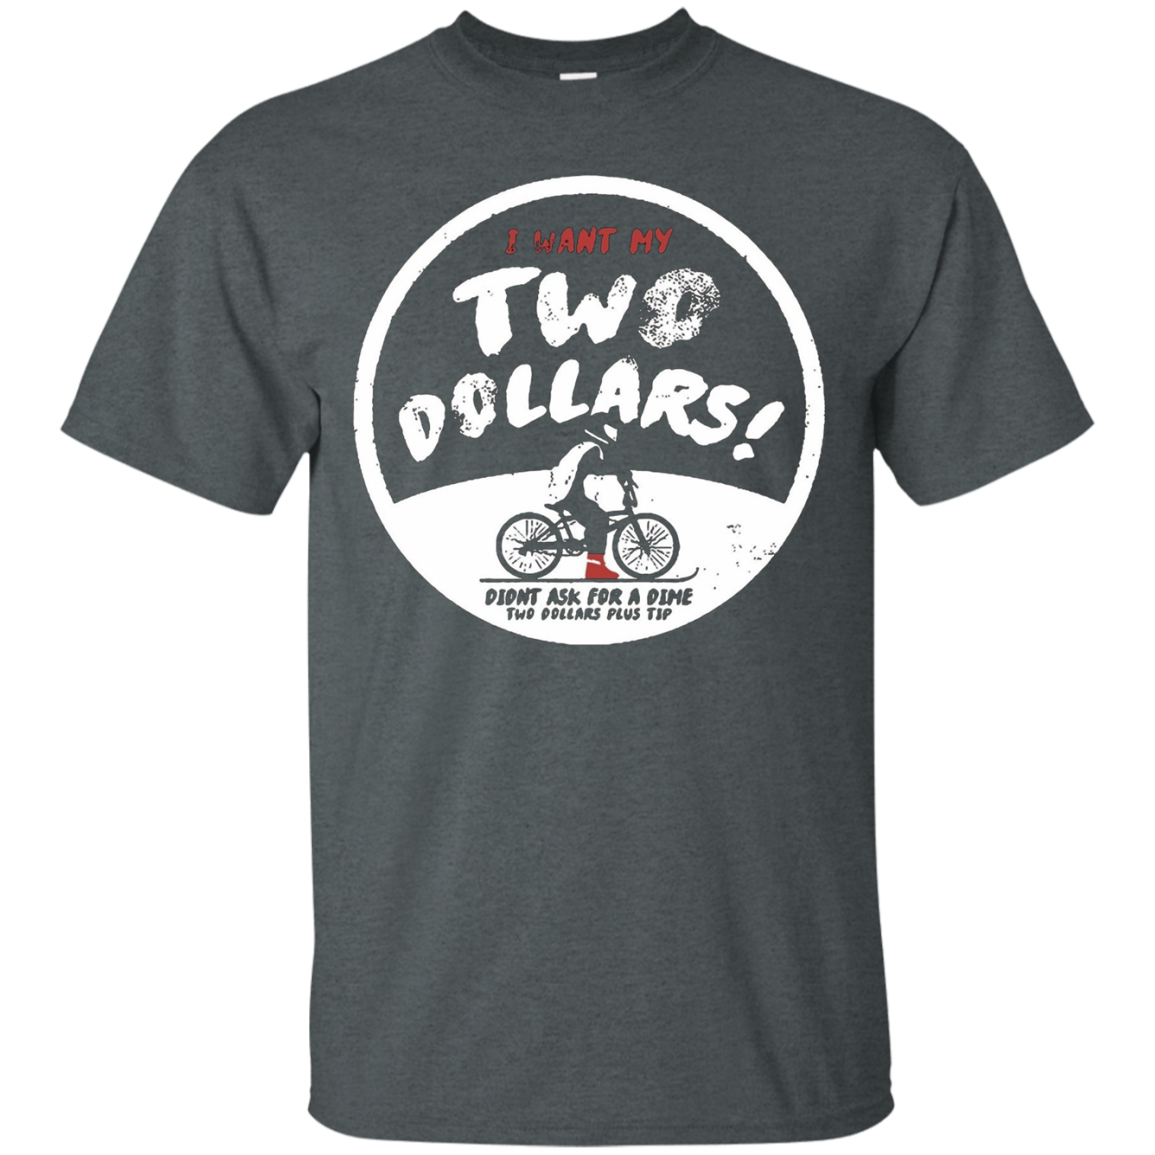 I Want My Two Dollars T-shirt